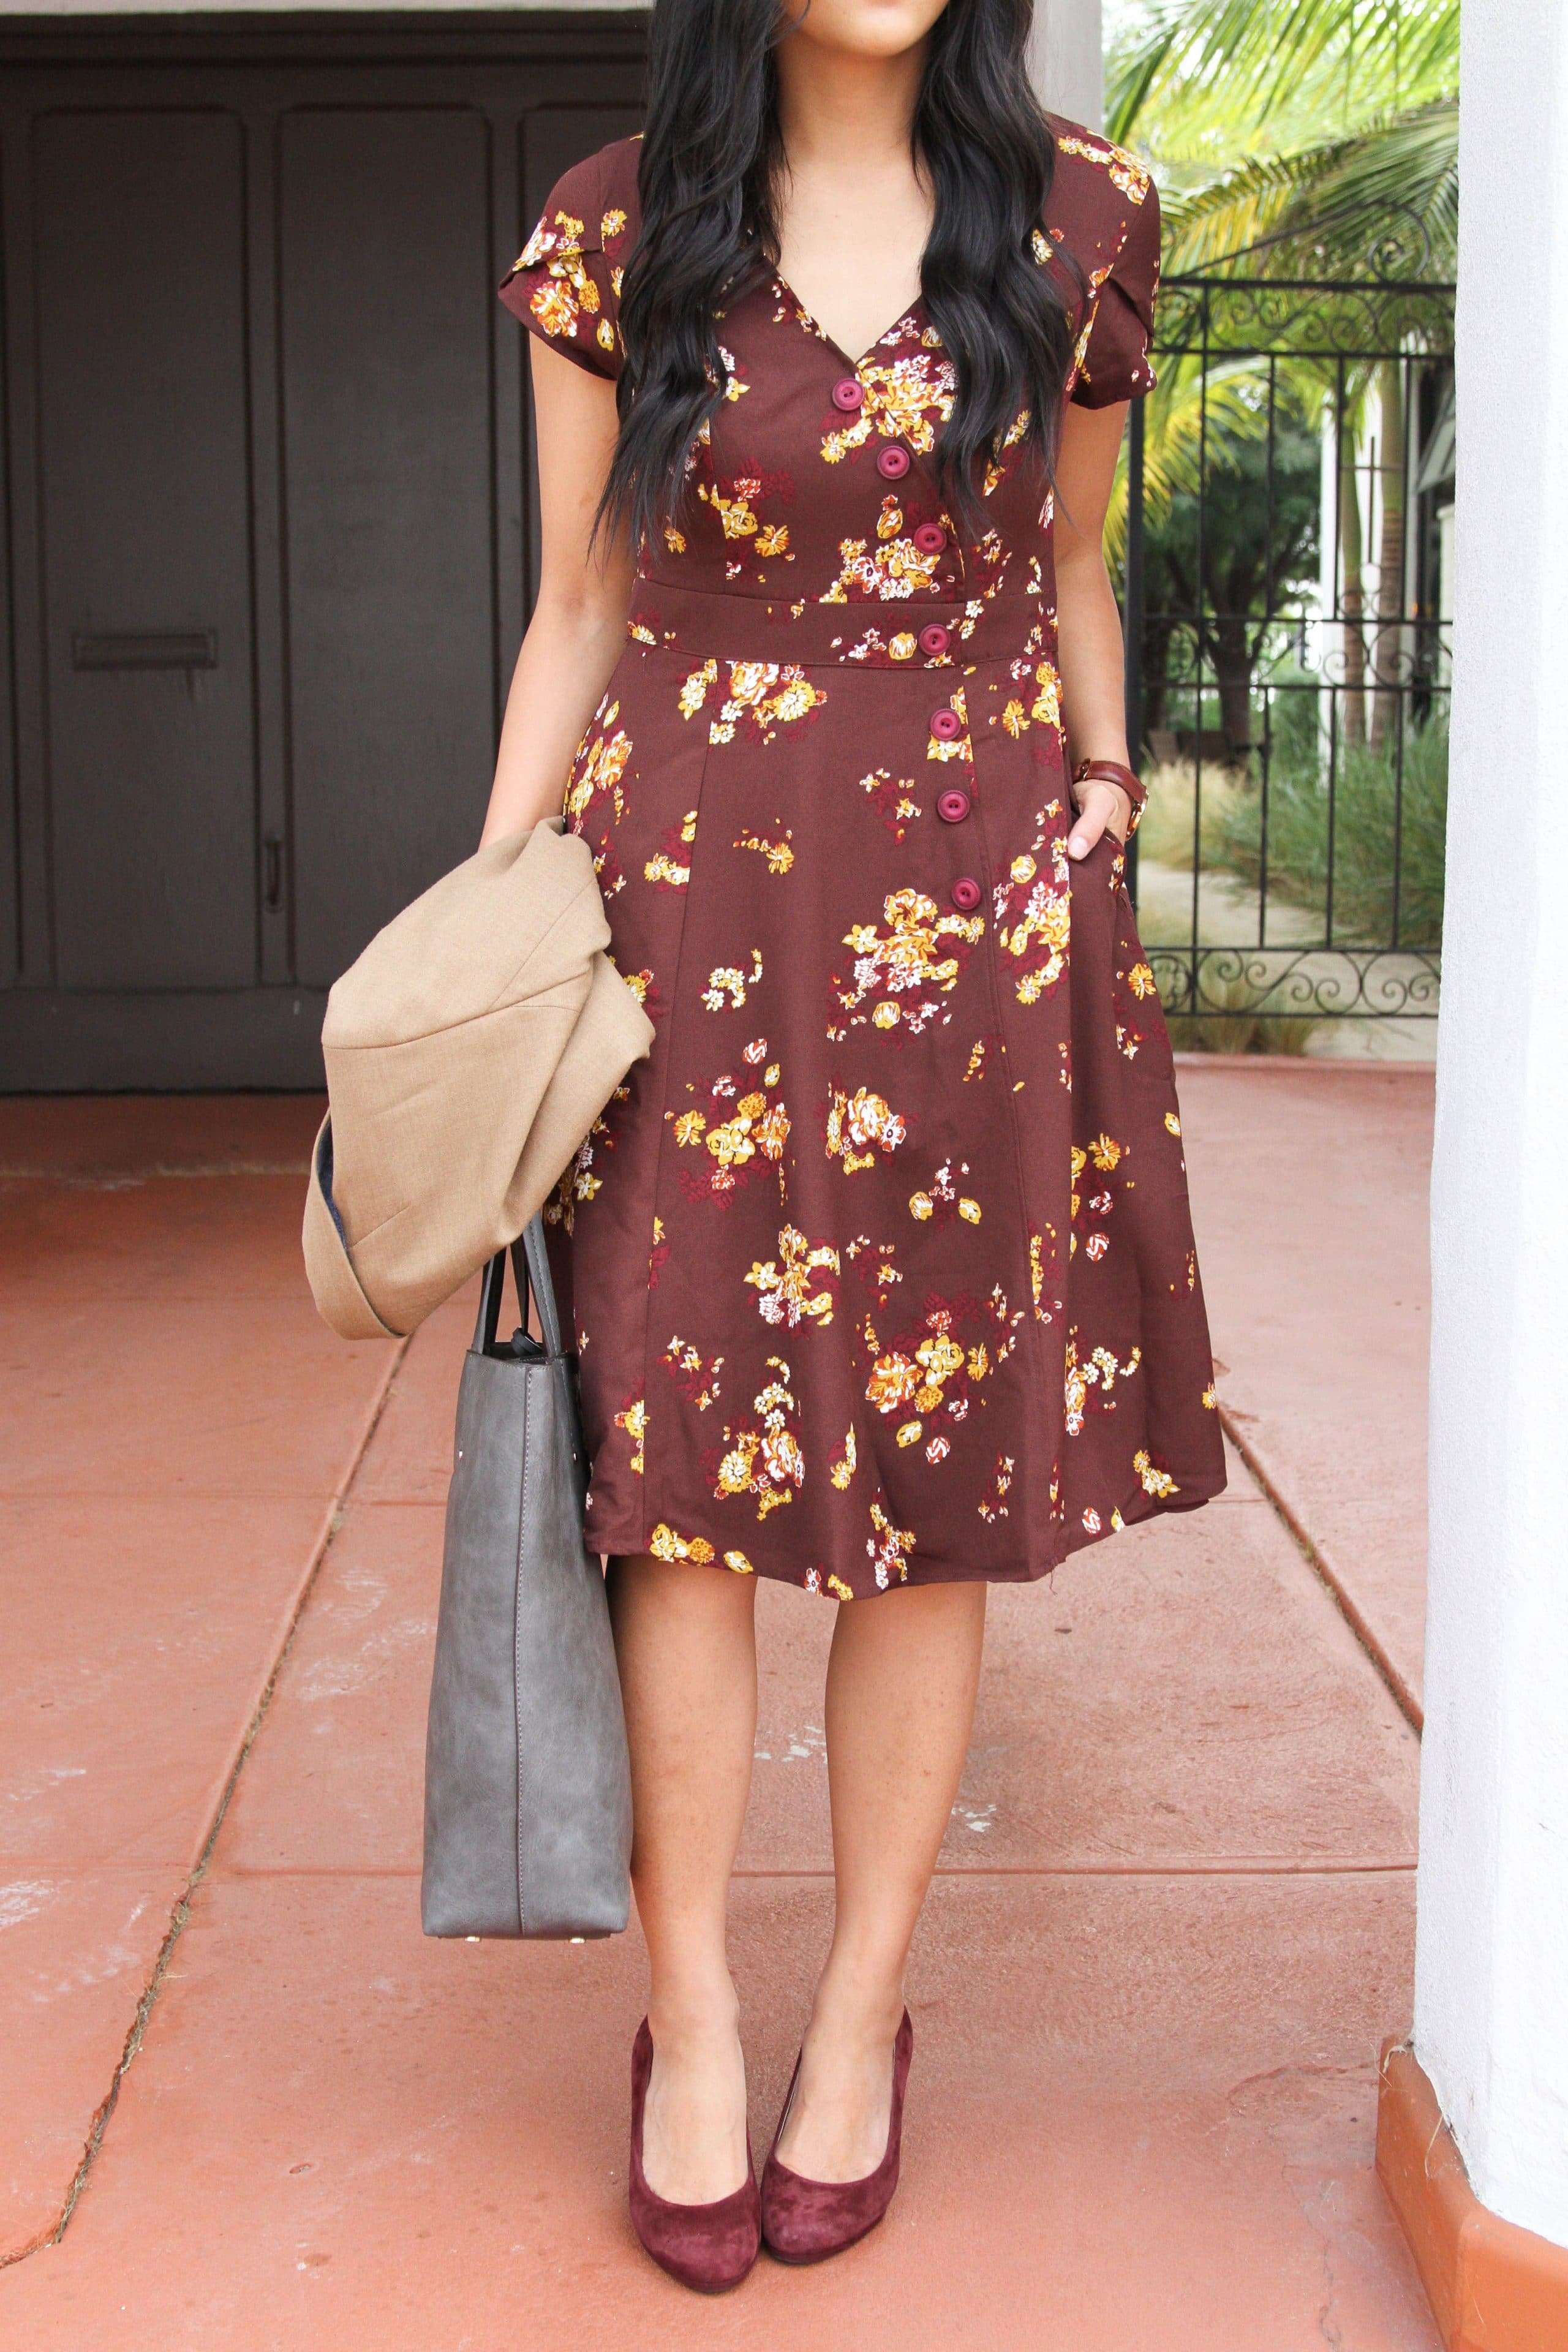 Maroon floral dress + Maroon heels + Grey Tote